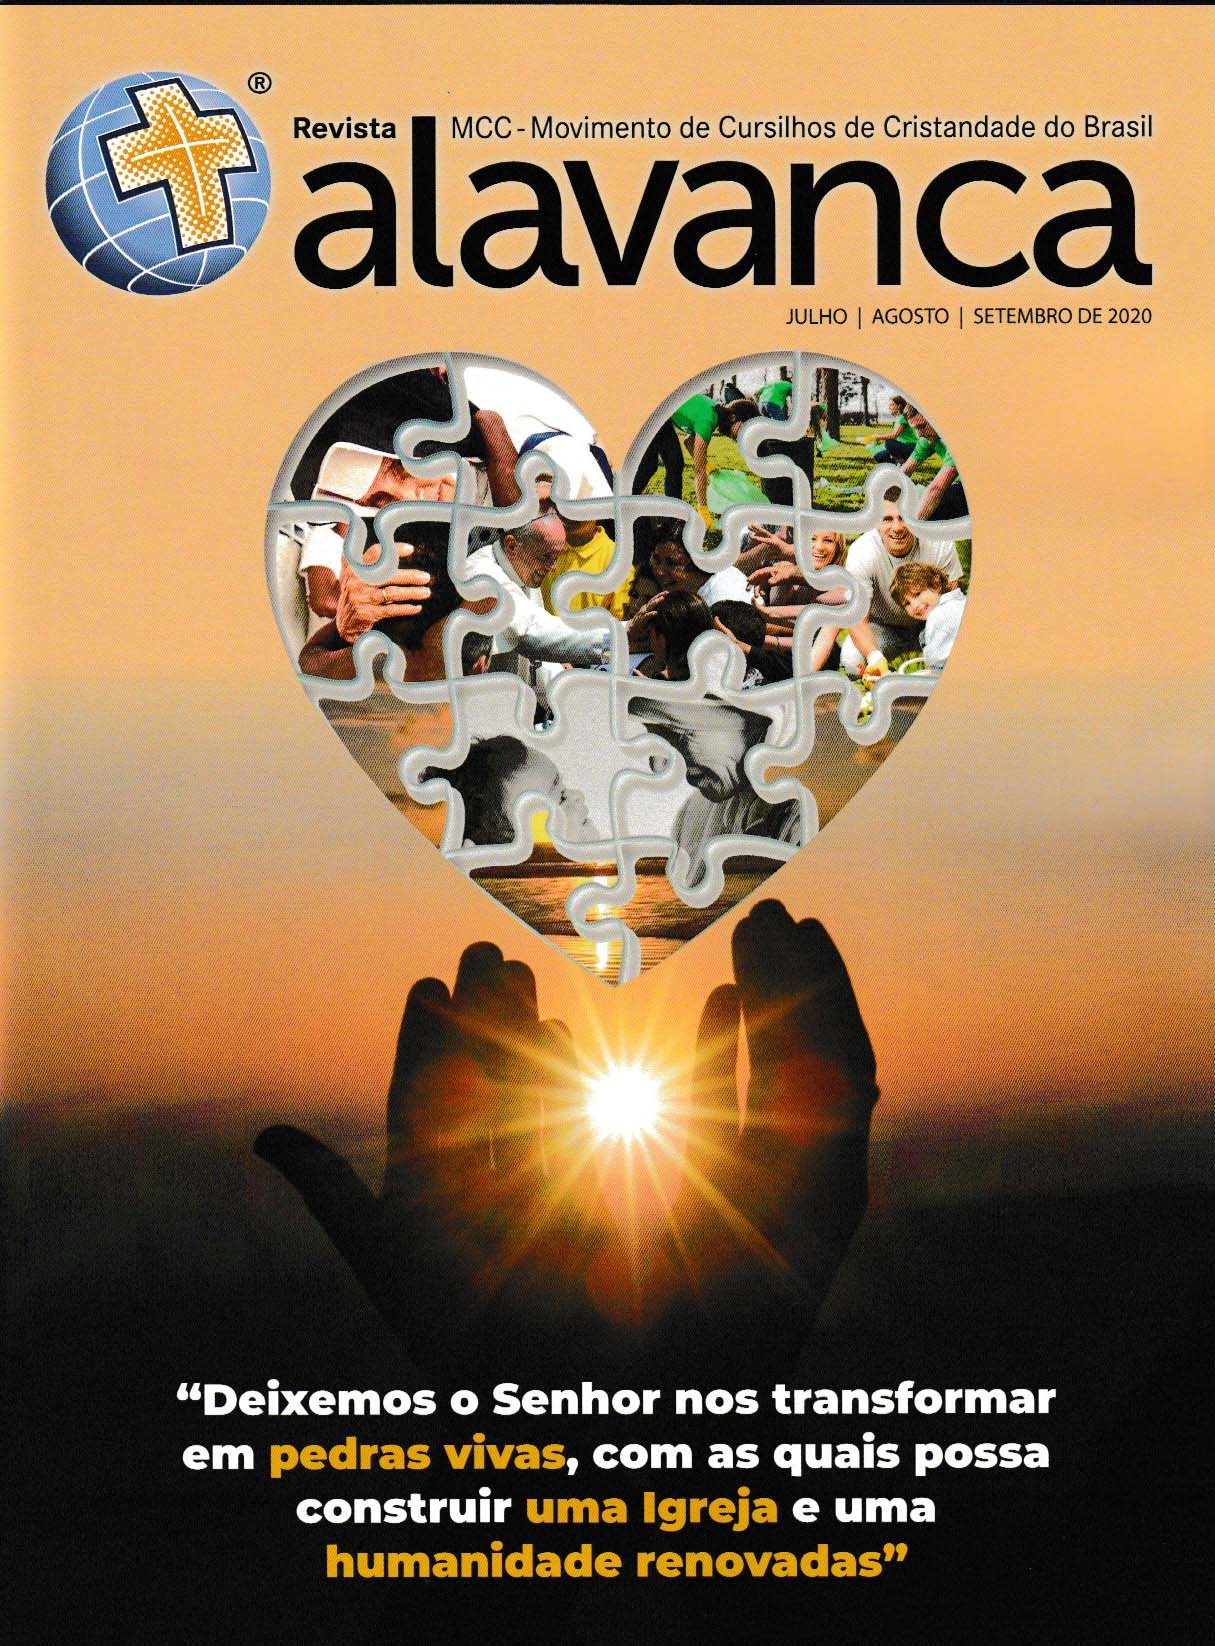 Revista Alavanca 3° Trimestre/2020  - Cursilho